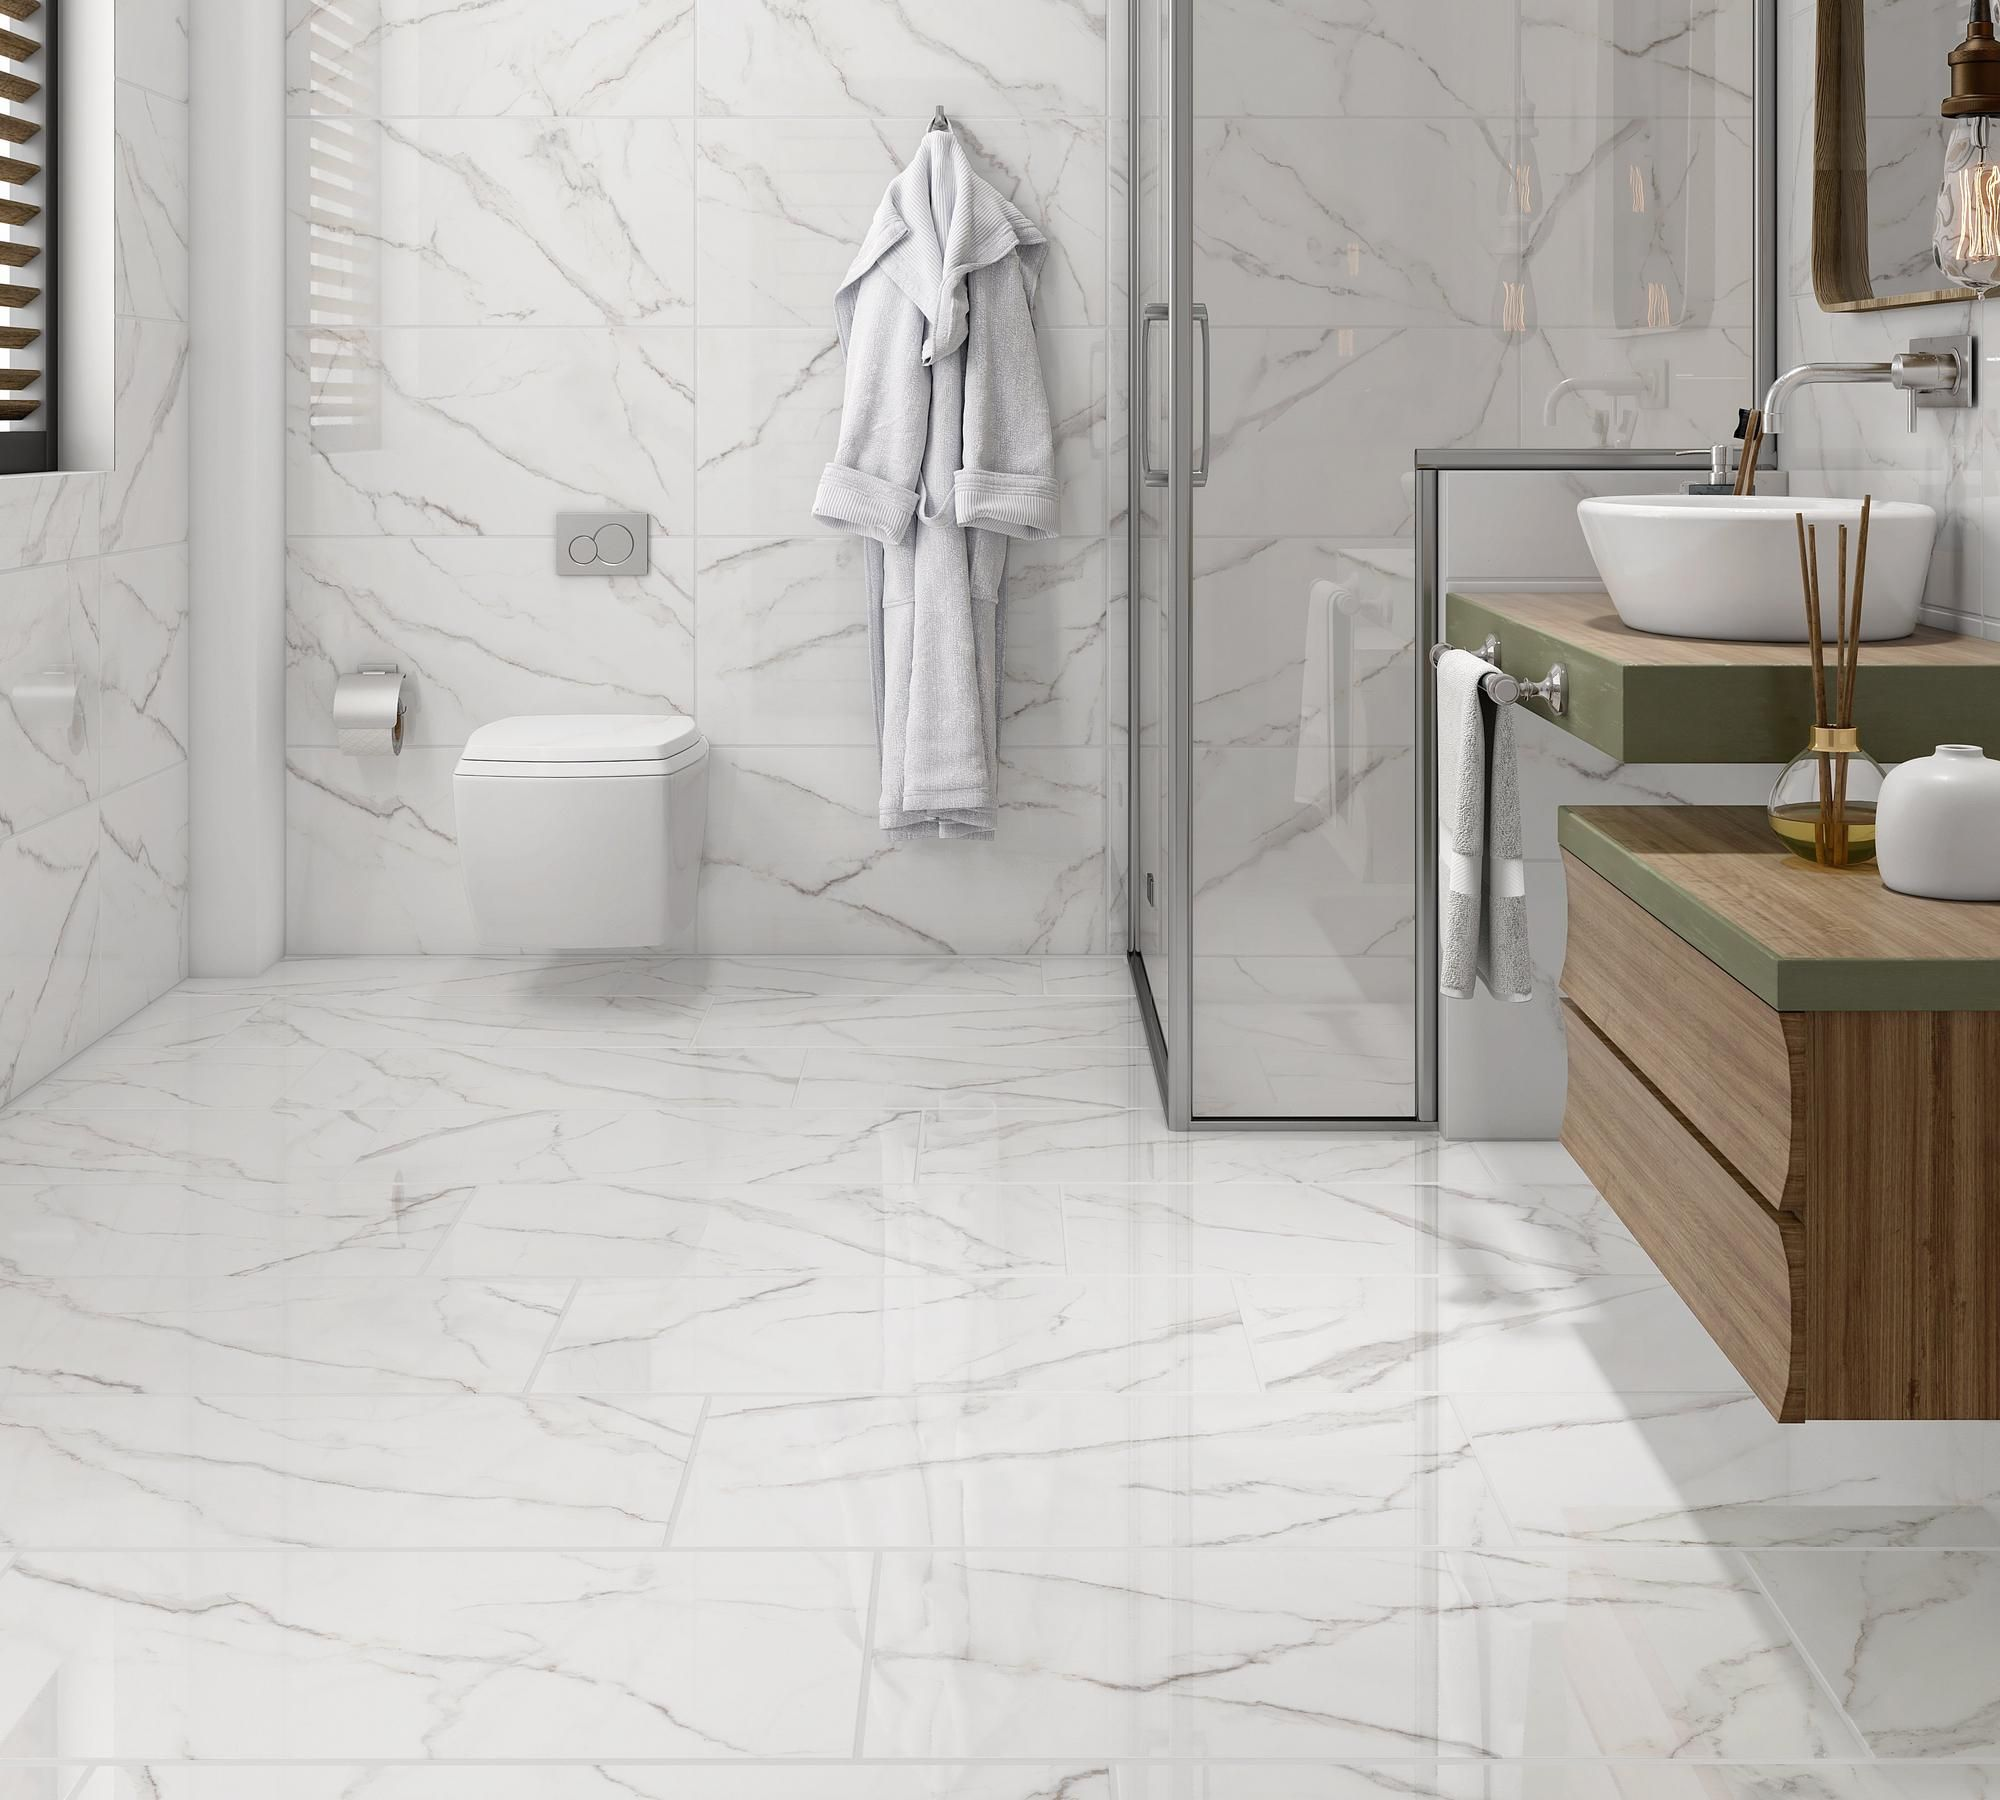 Selah White Ceramic Tile In 2020 White Ceramic Tiles Grey Polished Porcelain Tiles Ceramic Tiles